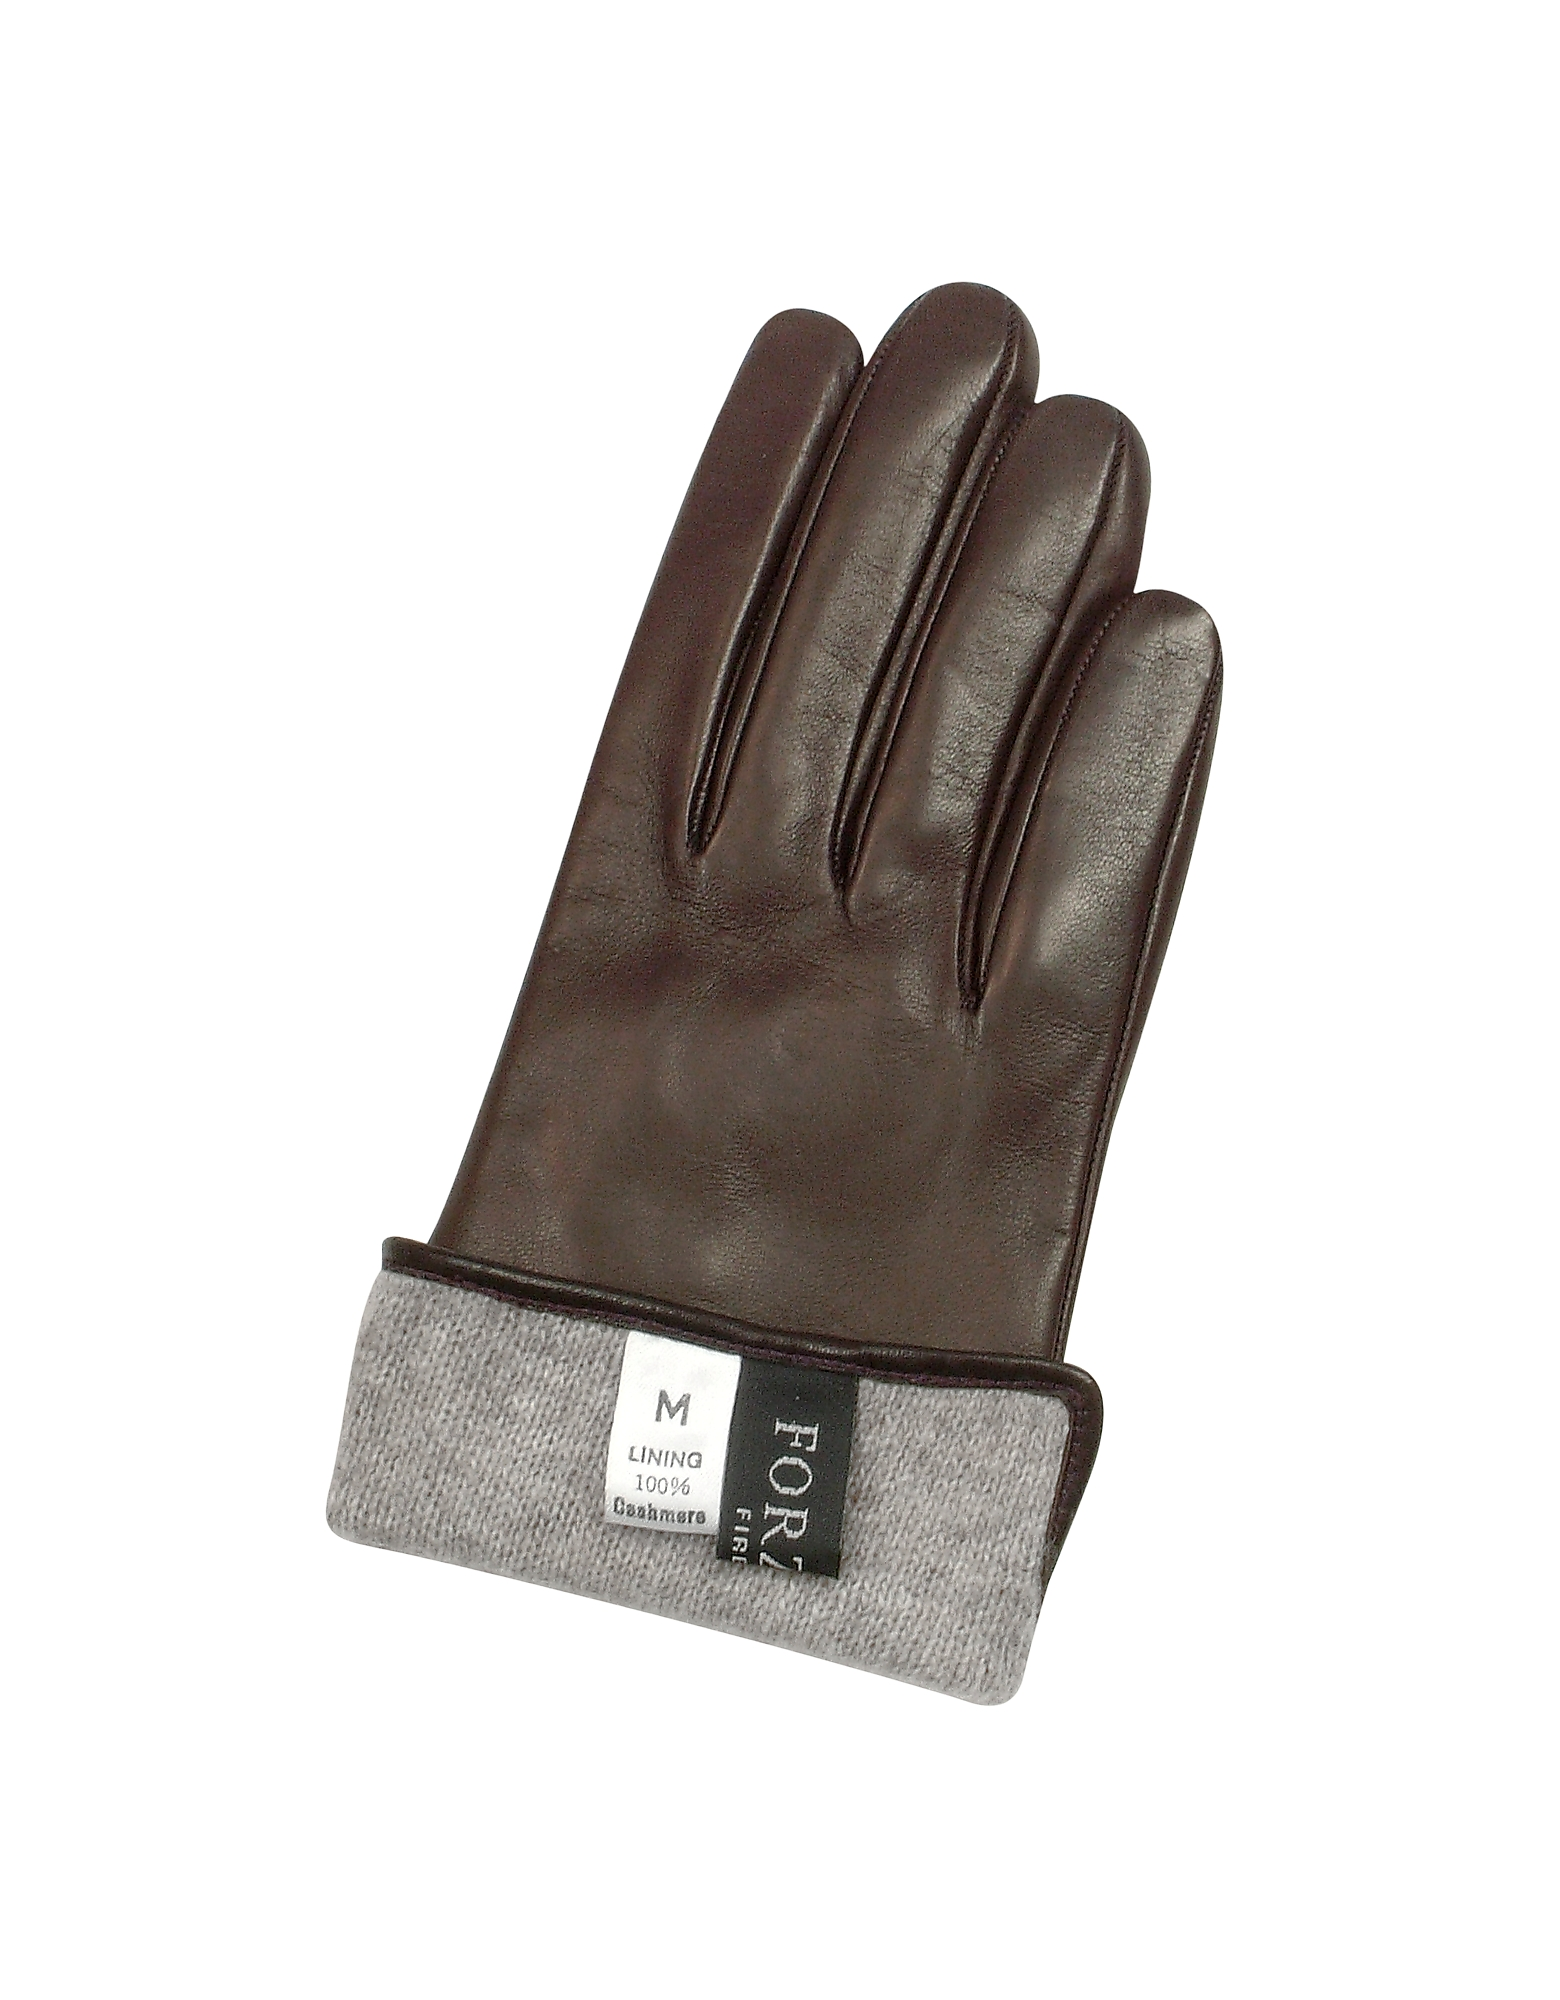 Women's Dark Brown Cashmere Lined Italian Leather Gloves от Forzieri.com INT